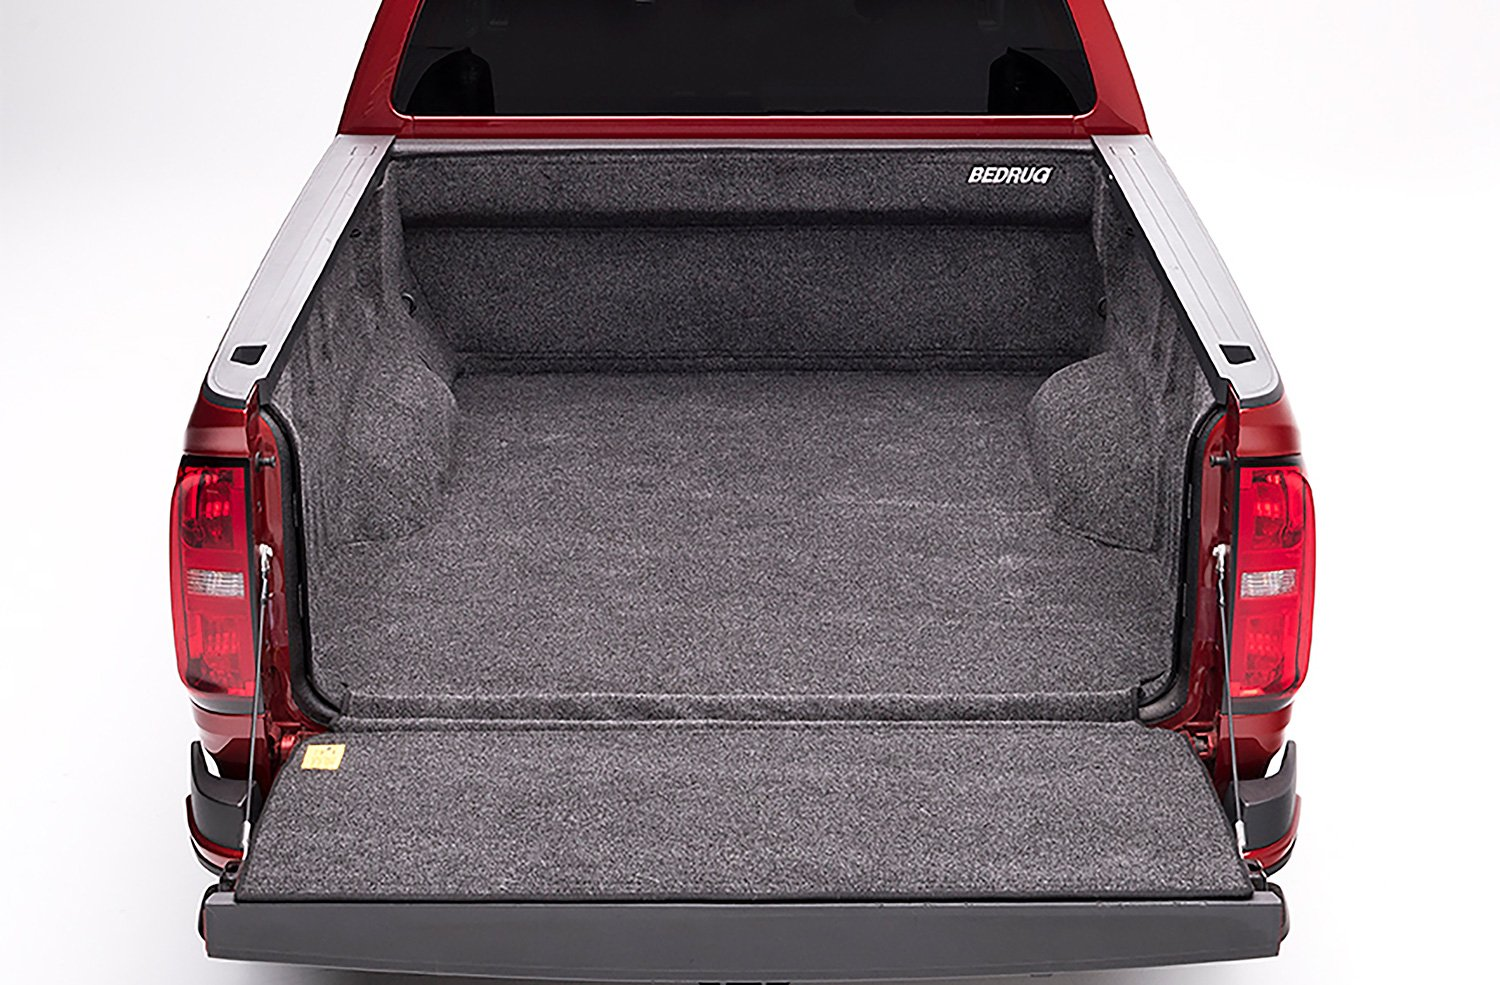 Img X moreover Honda Ridgeline Debuts With Industry First In Bed Audio System Live Photos further Lg additionally Img Zps F Ba A Ef Cc Cc F F E D Fc E Aa C E F furthermore D Cb Antenna Location Pb. on ford f 150 truck bed size